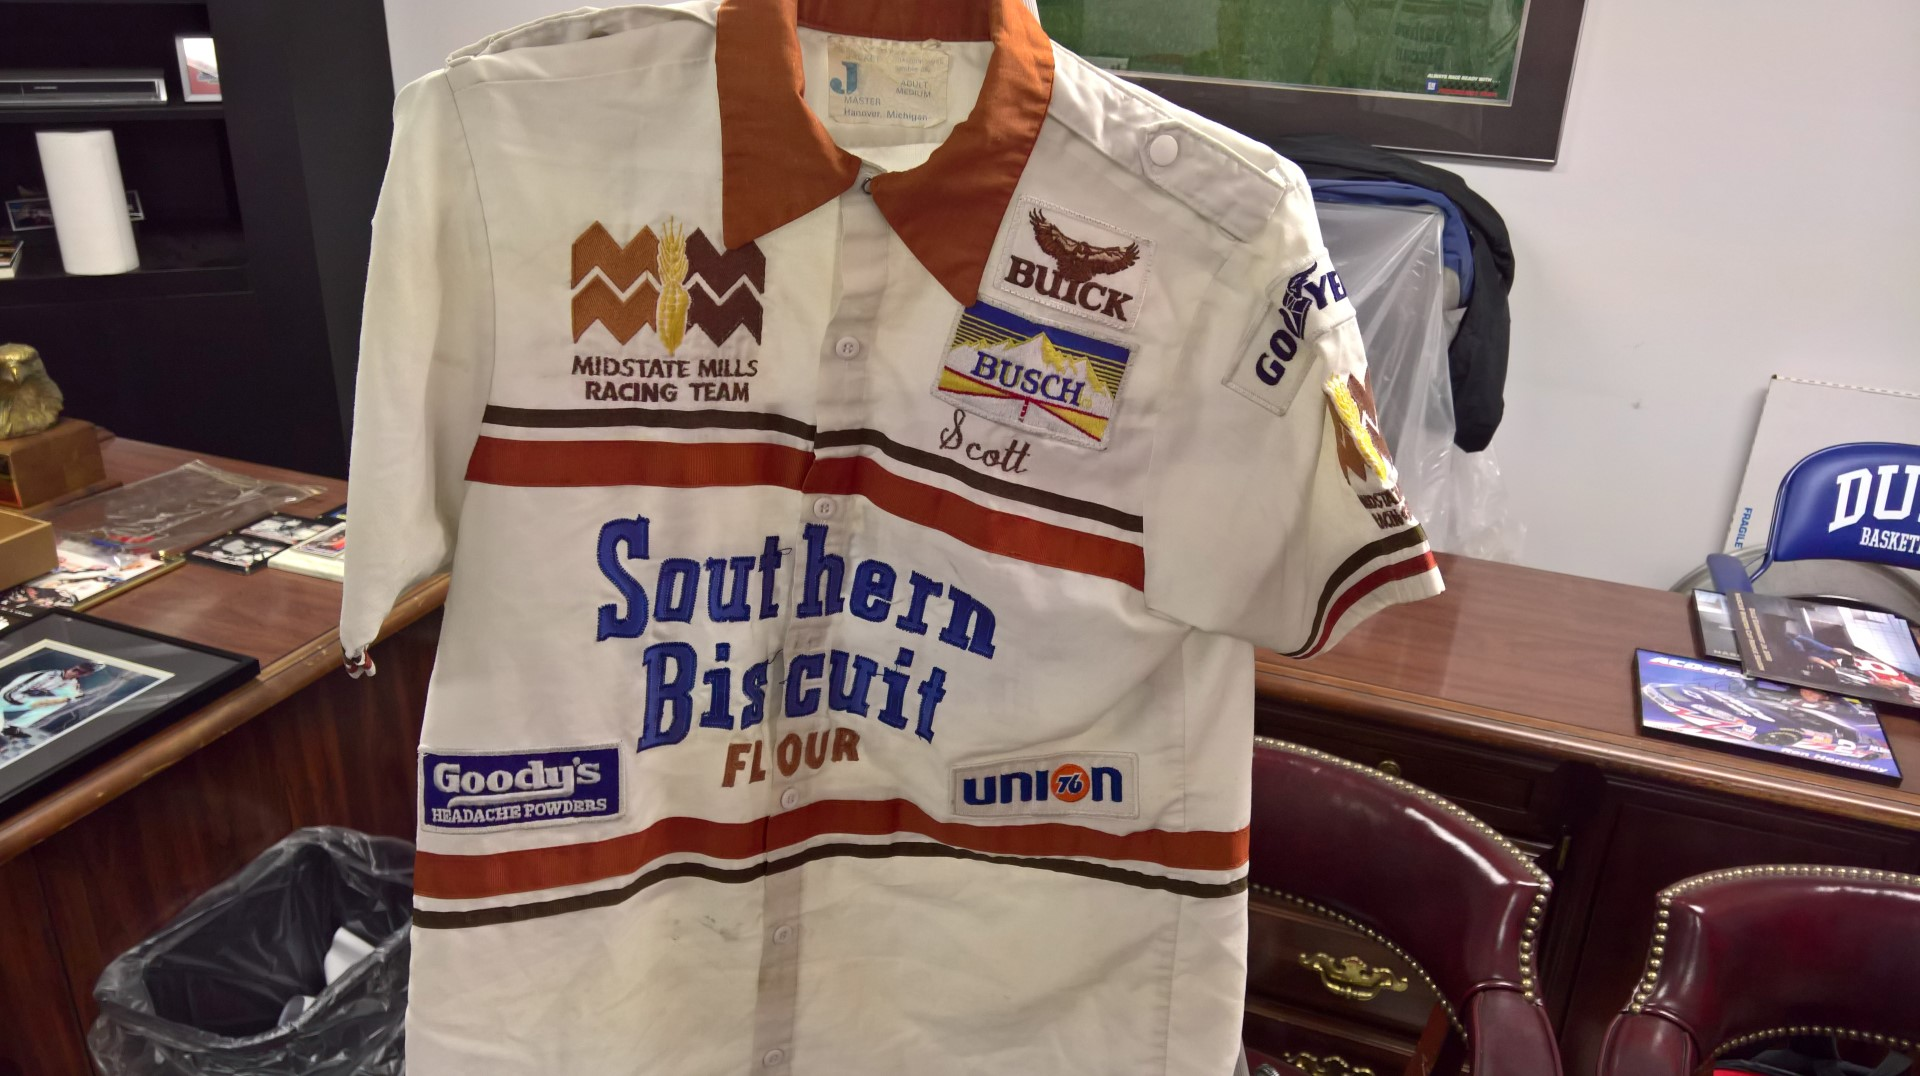 Southern Biscuit Flour Pit Crew Shirt